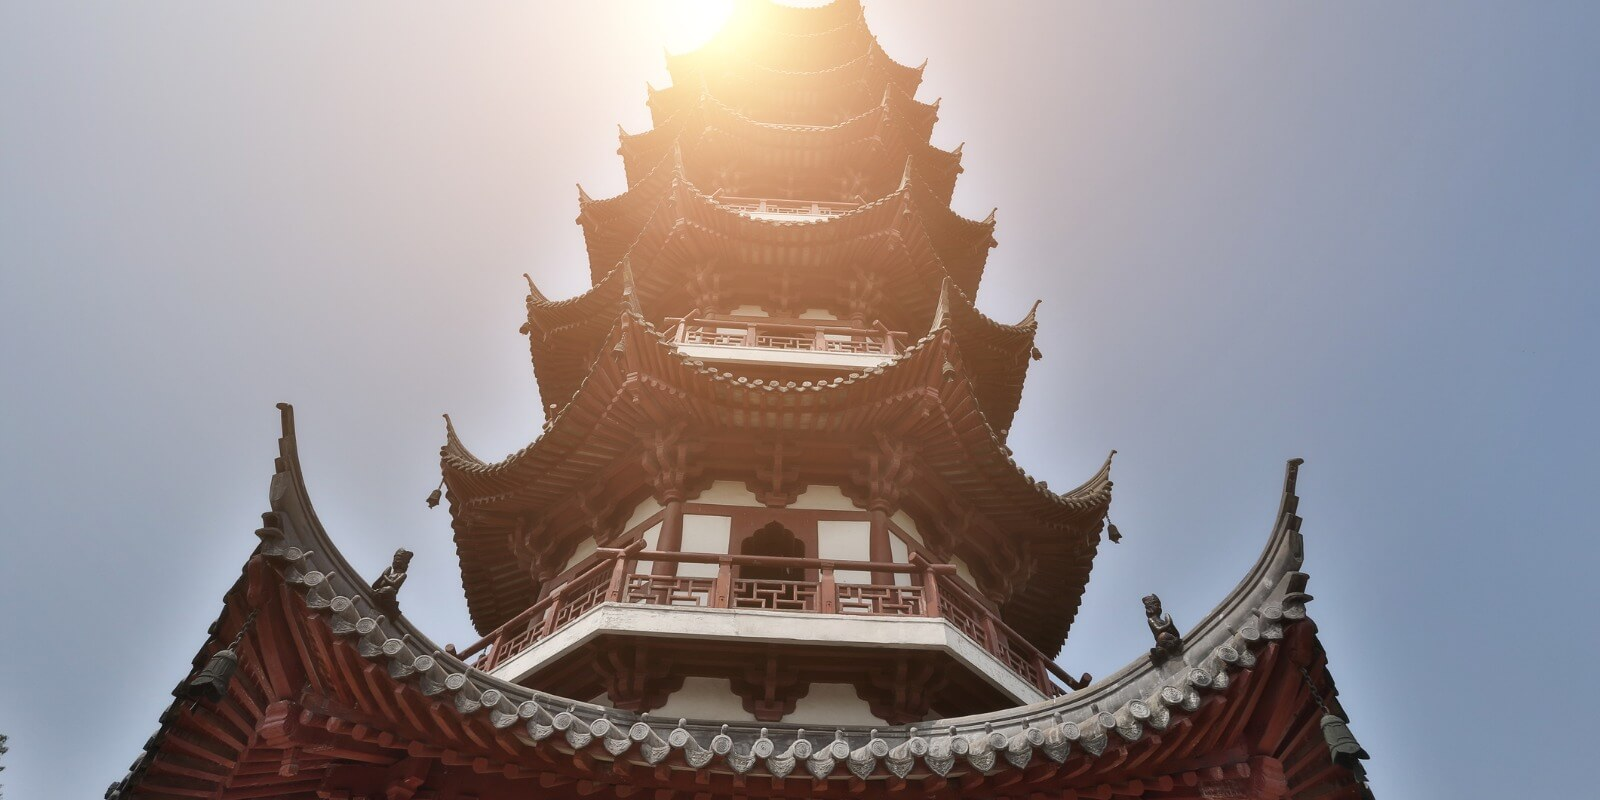 6 Attractions to See in Suzhou, China